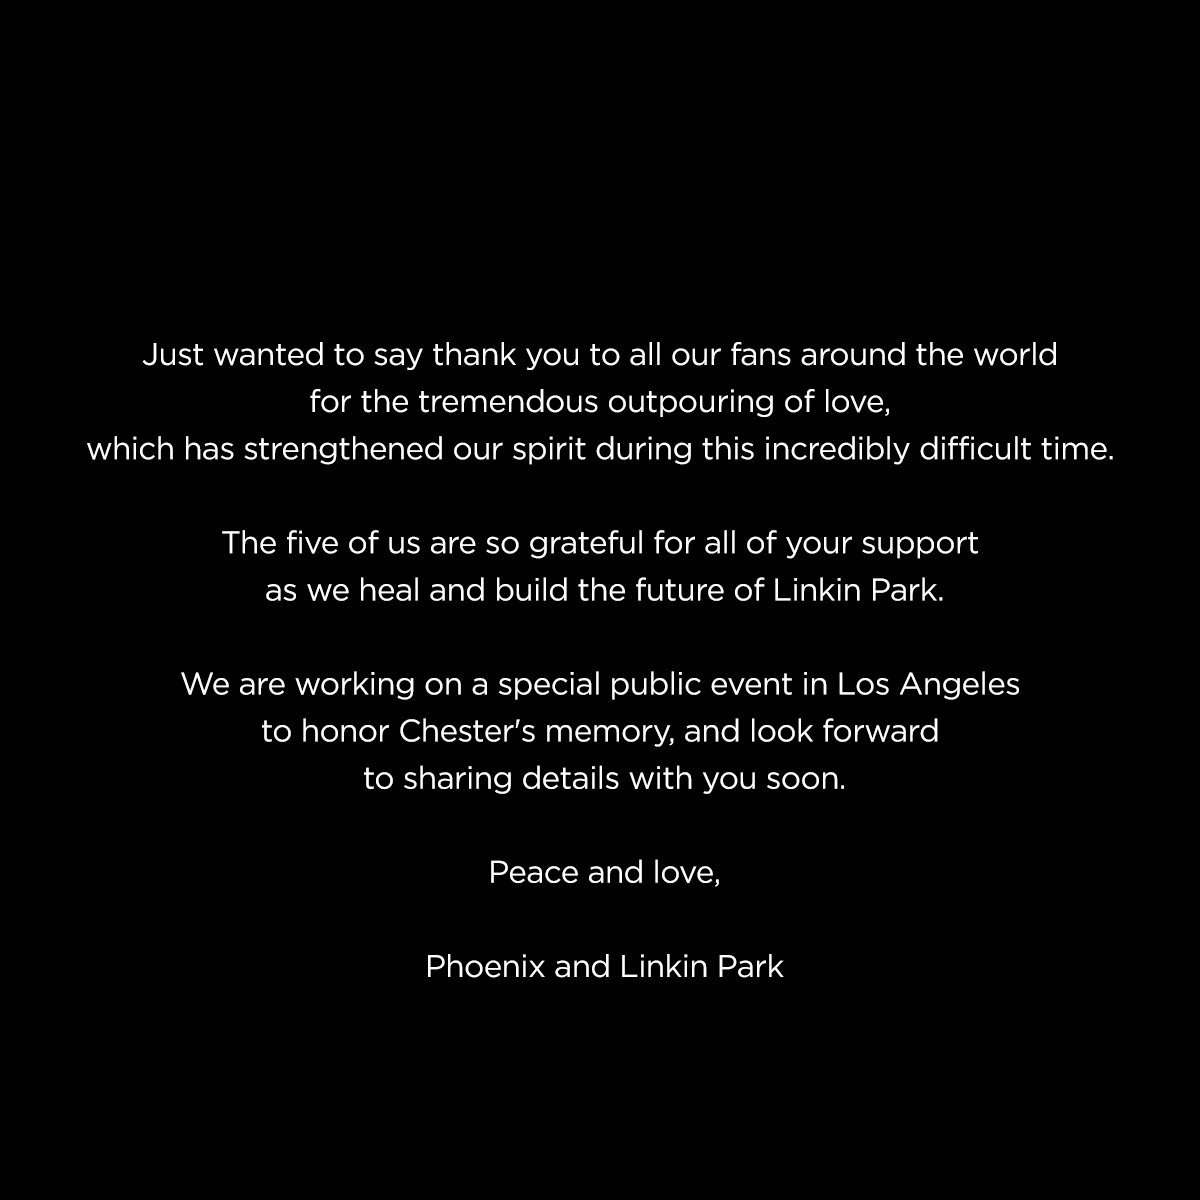 Linkin Park official statement